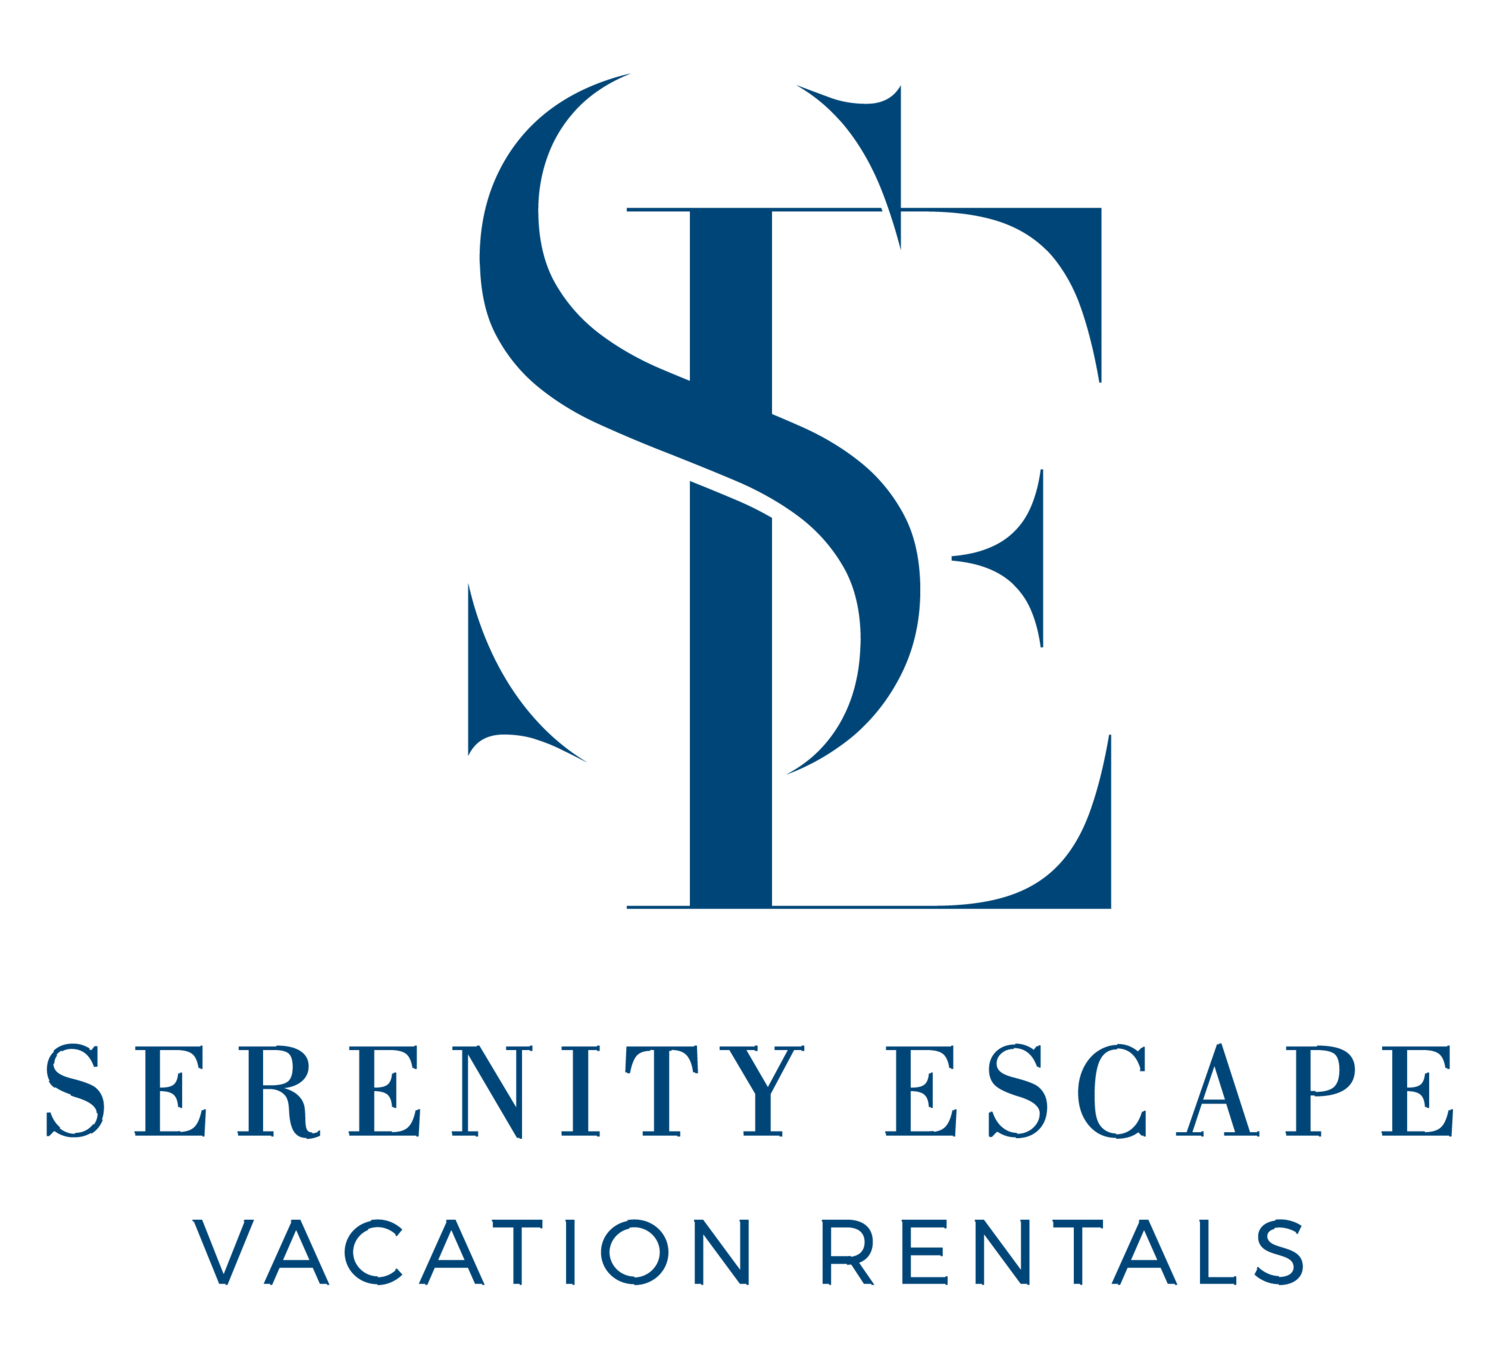 Serenity Escape Vacation Rentals